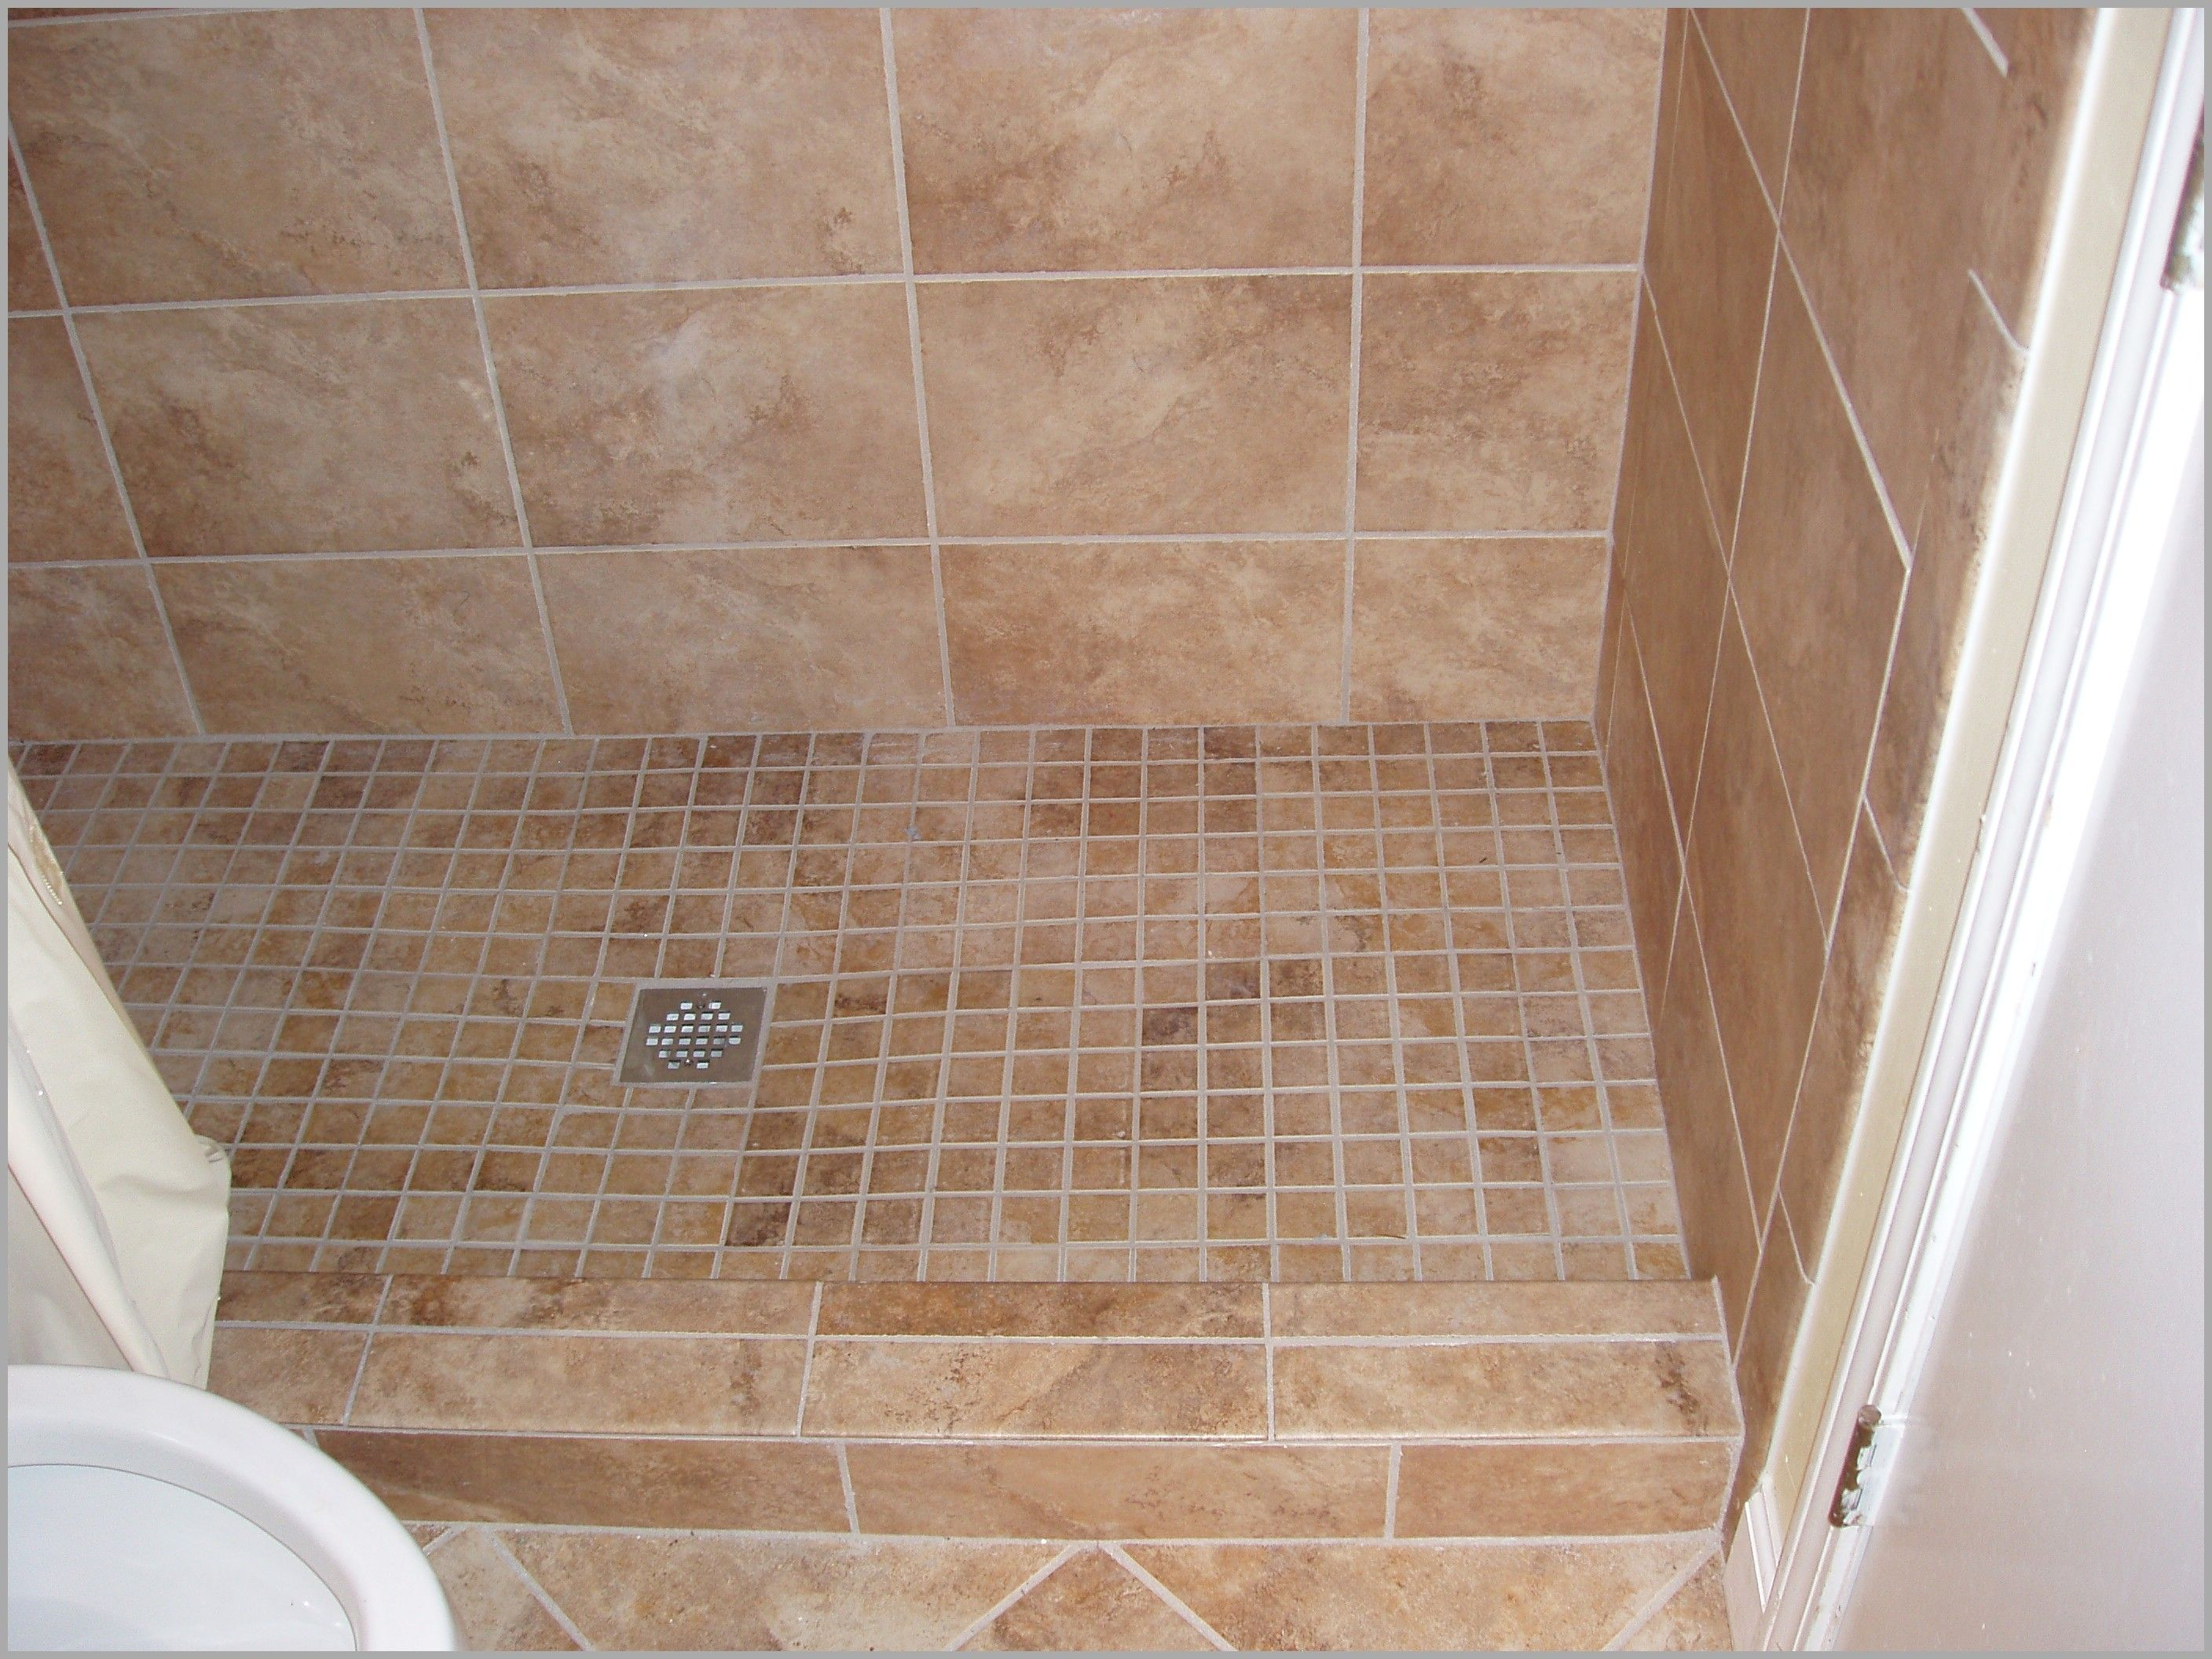 Pin by Michael Waite on 1151 Bathrooms   Home depot ...